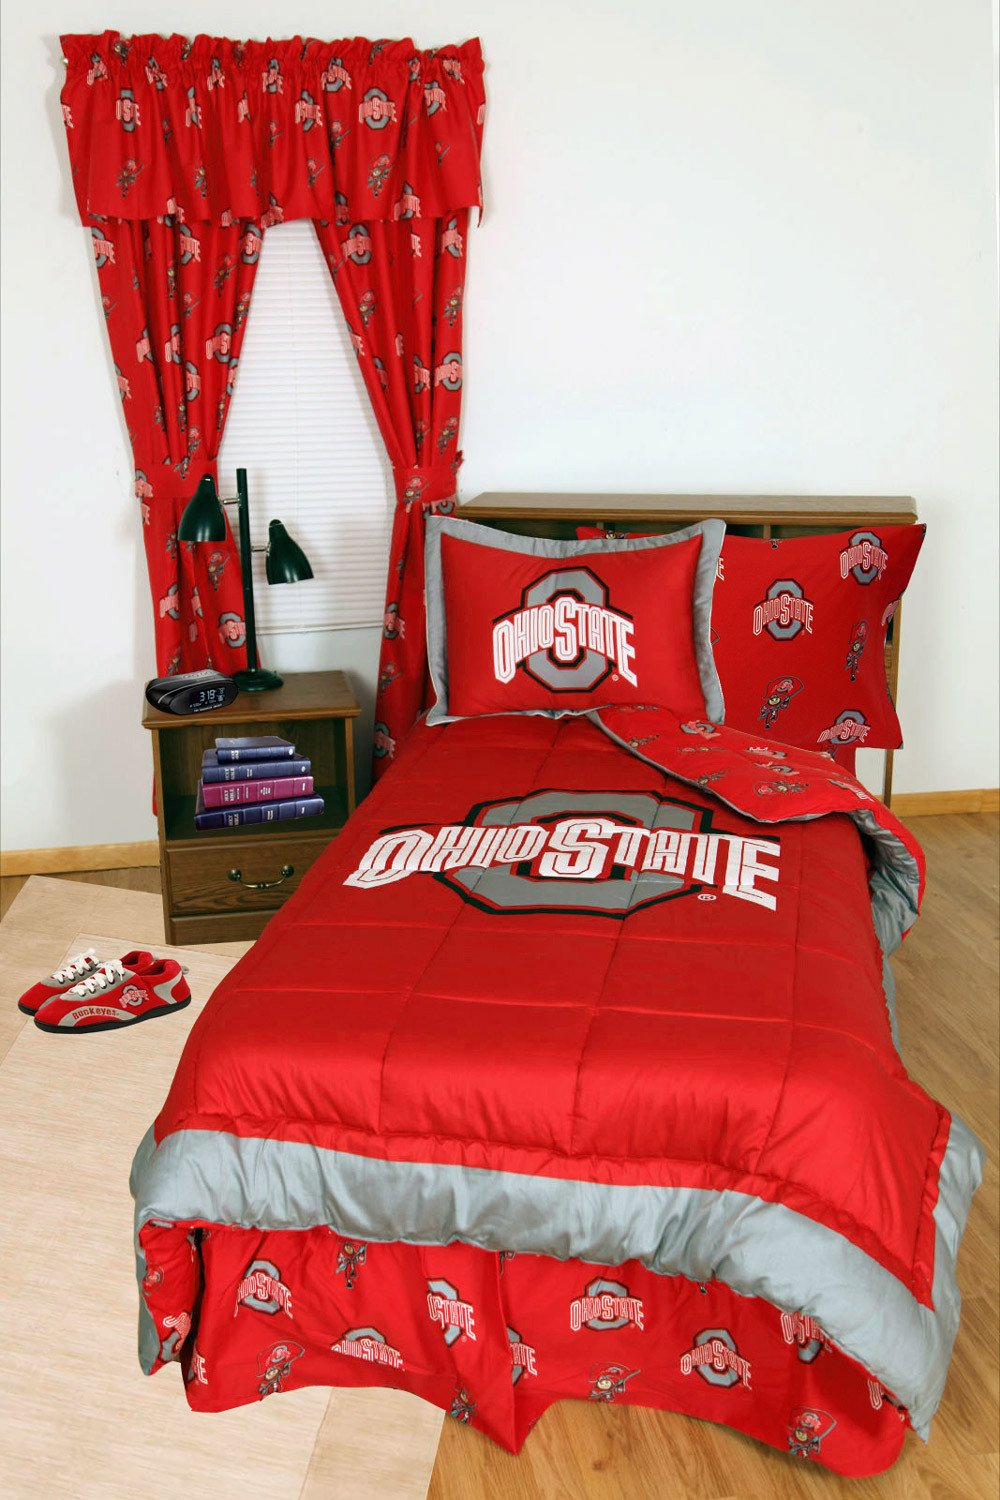 College | Sheet | Queen | Cover | State | Color | Ohio | Team | Bed | Bag